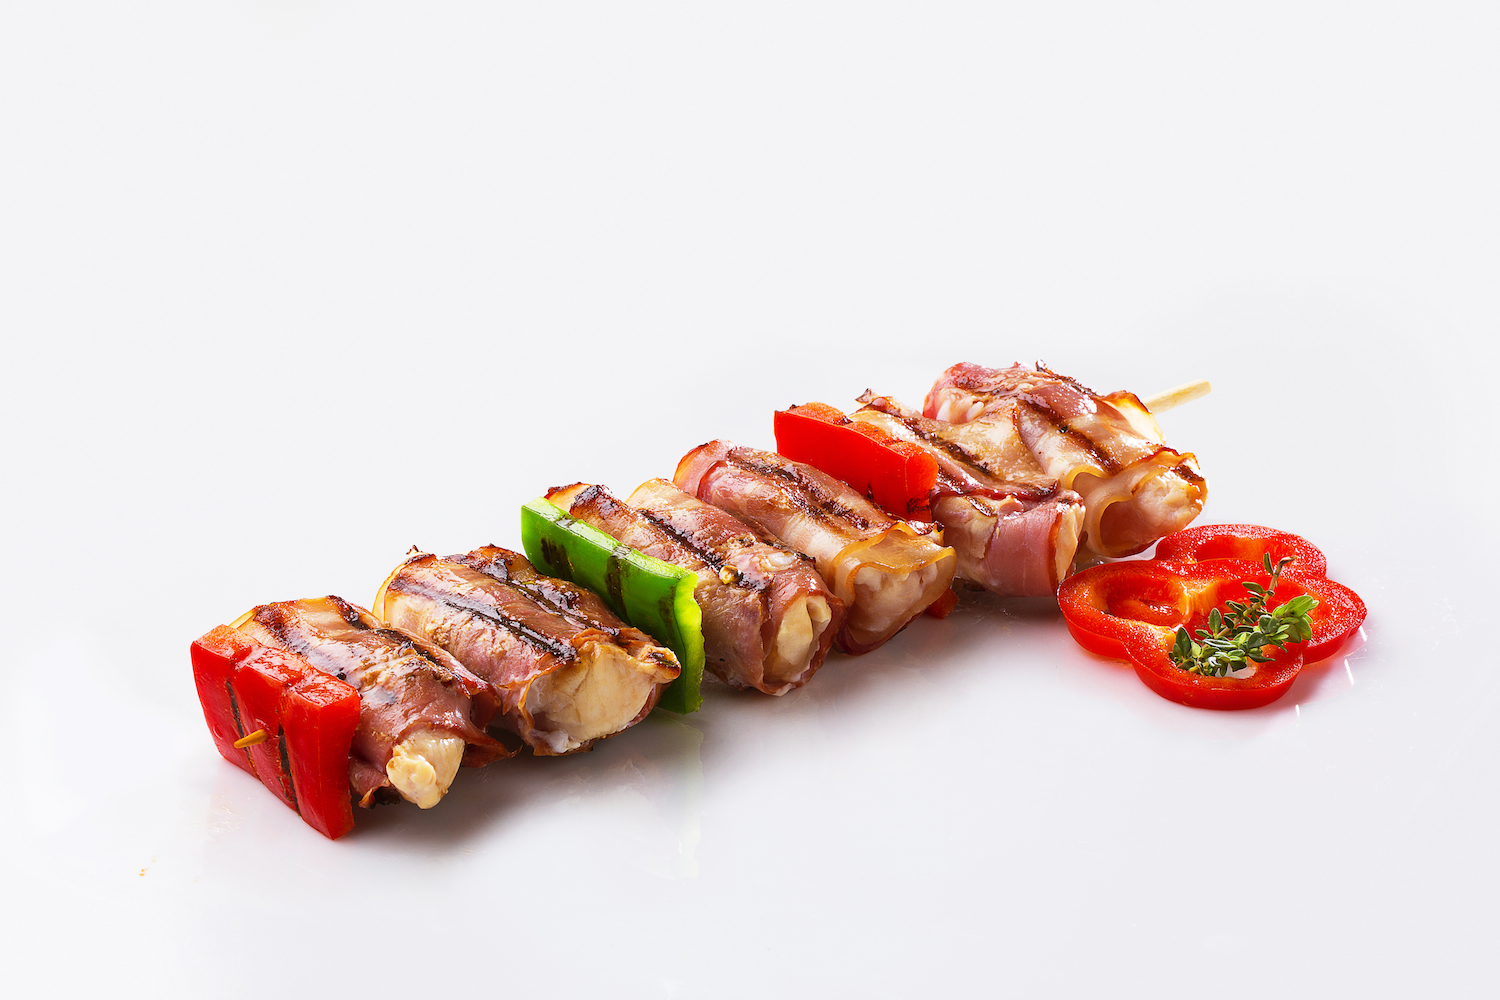 Chicken and bacon skewer